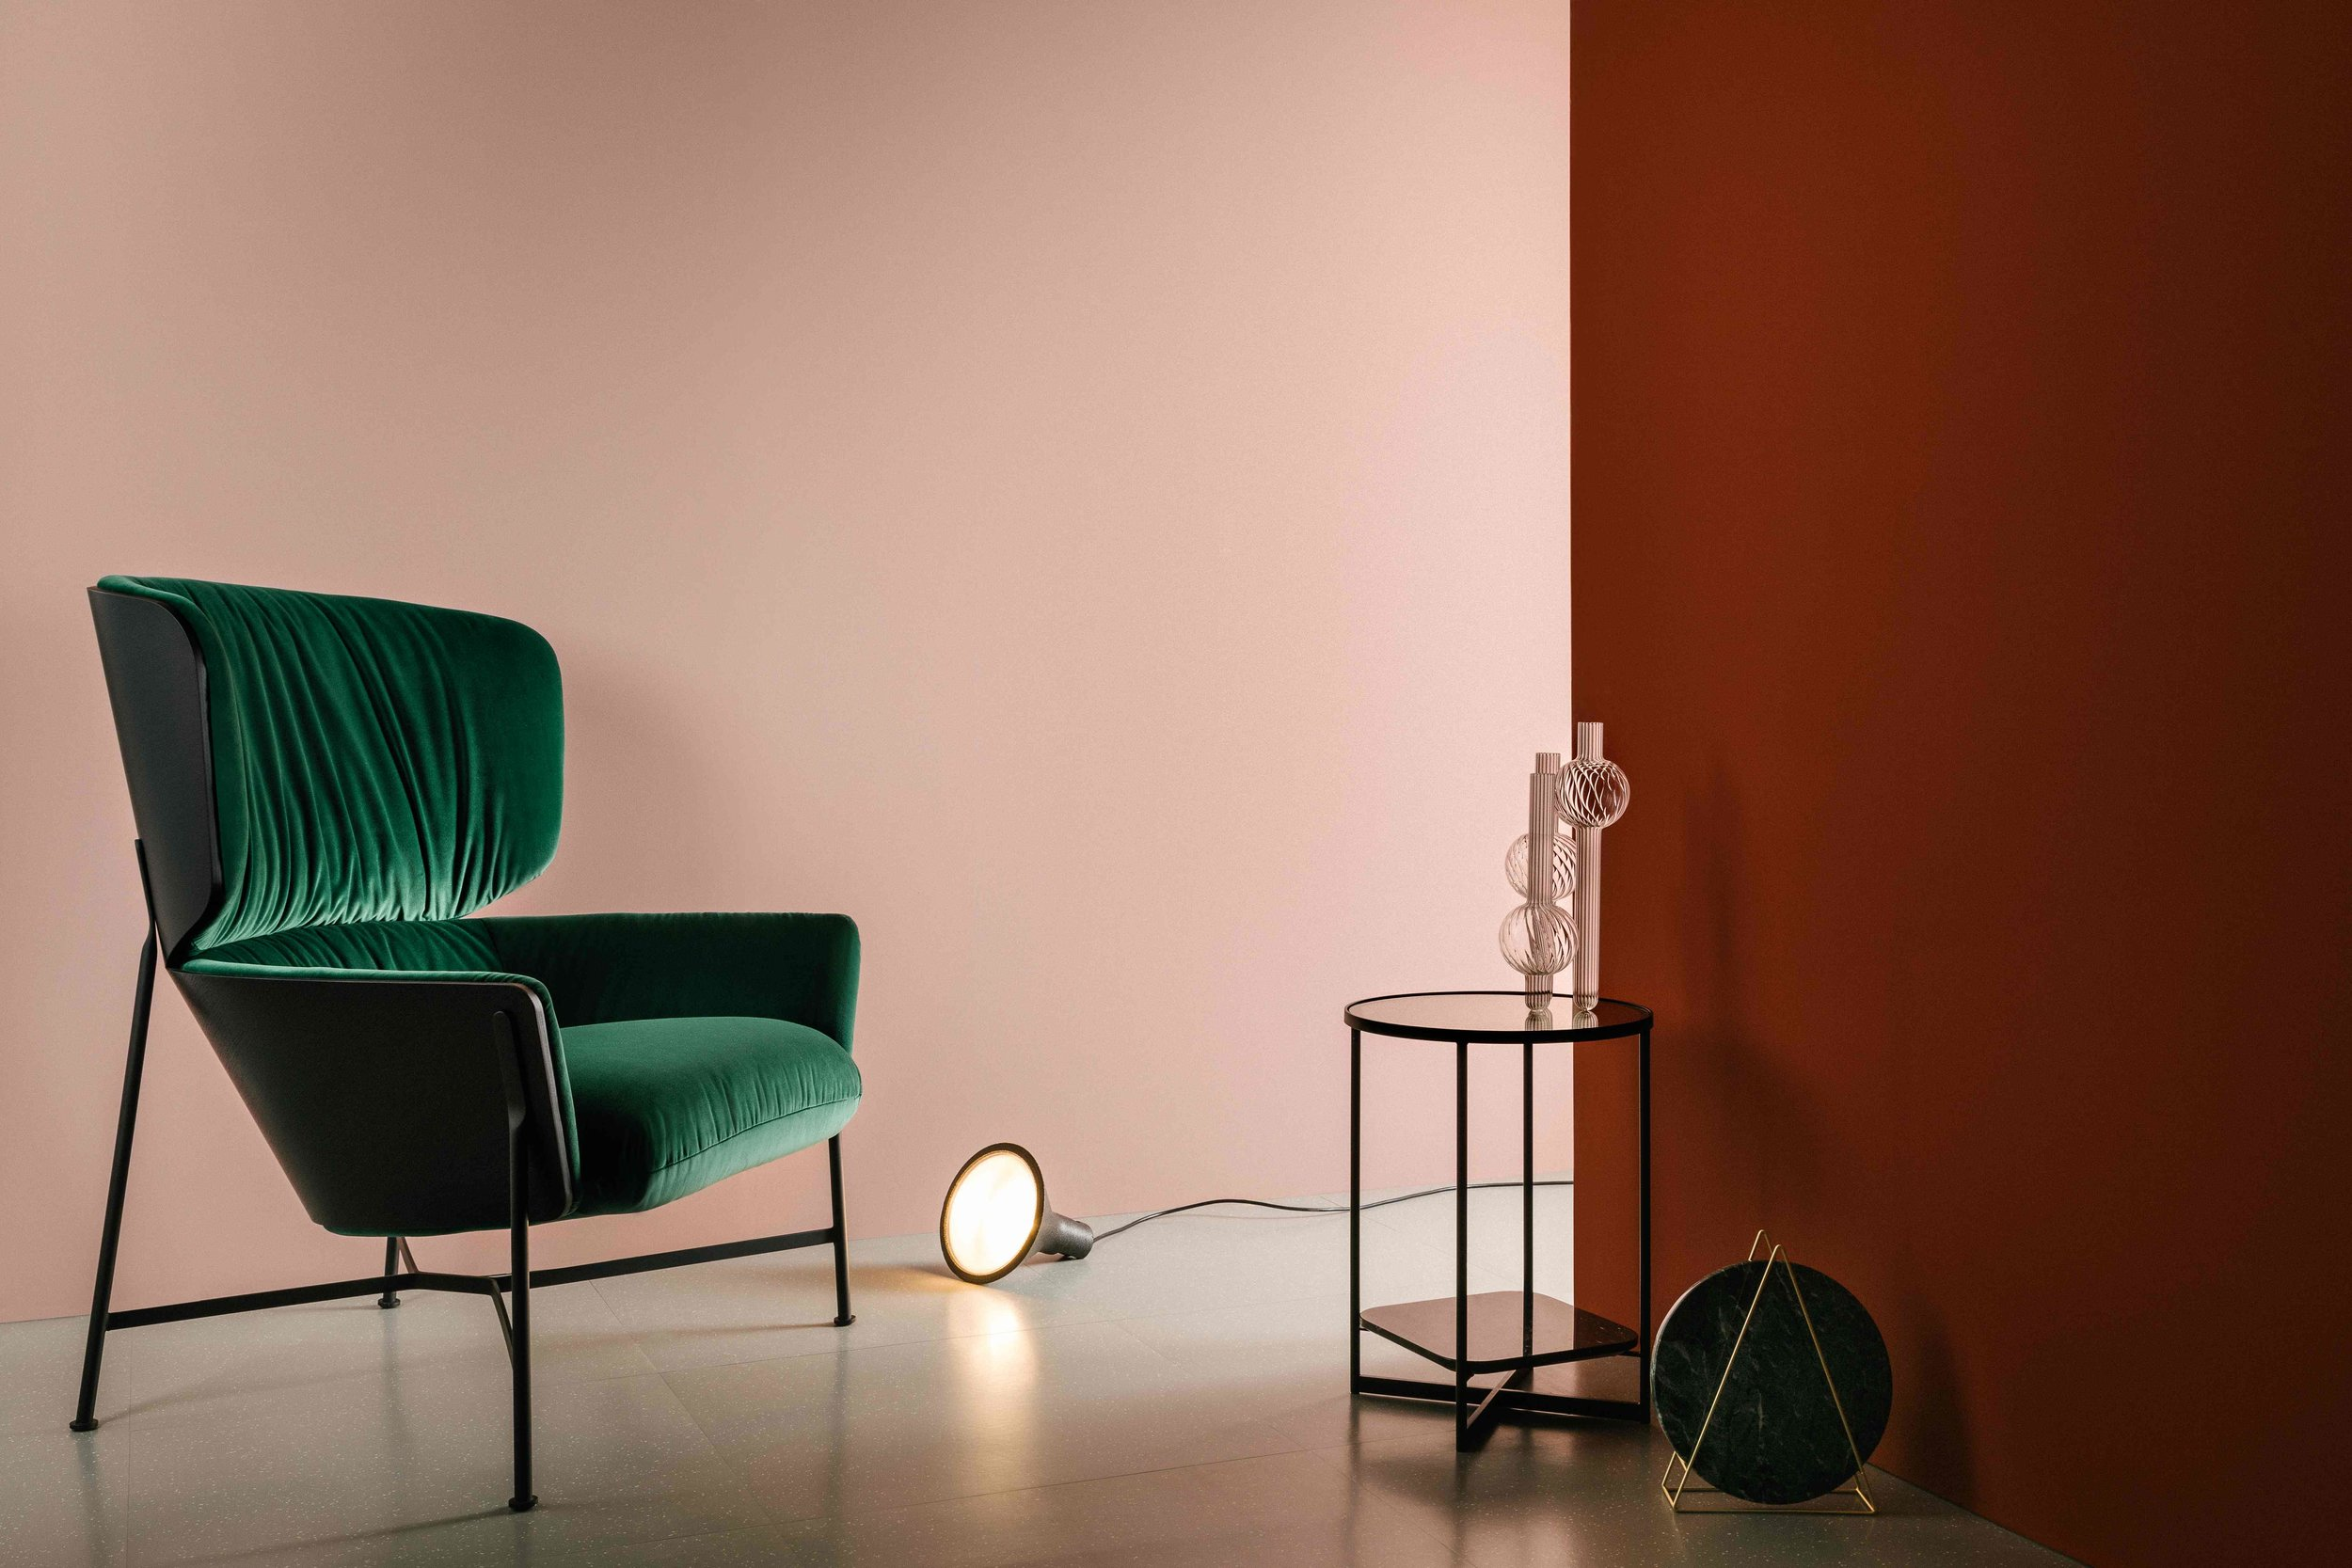 The bespoke upholstery, refined forms, materials and colours of the Tim Rundle collection for SP01 evokes mid-century Italian  moderne.